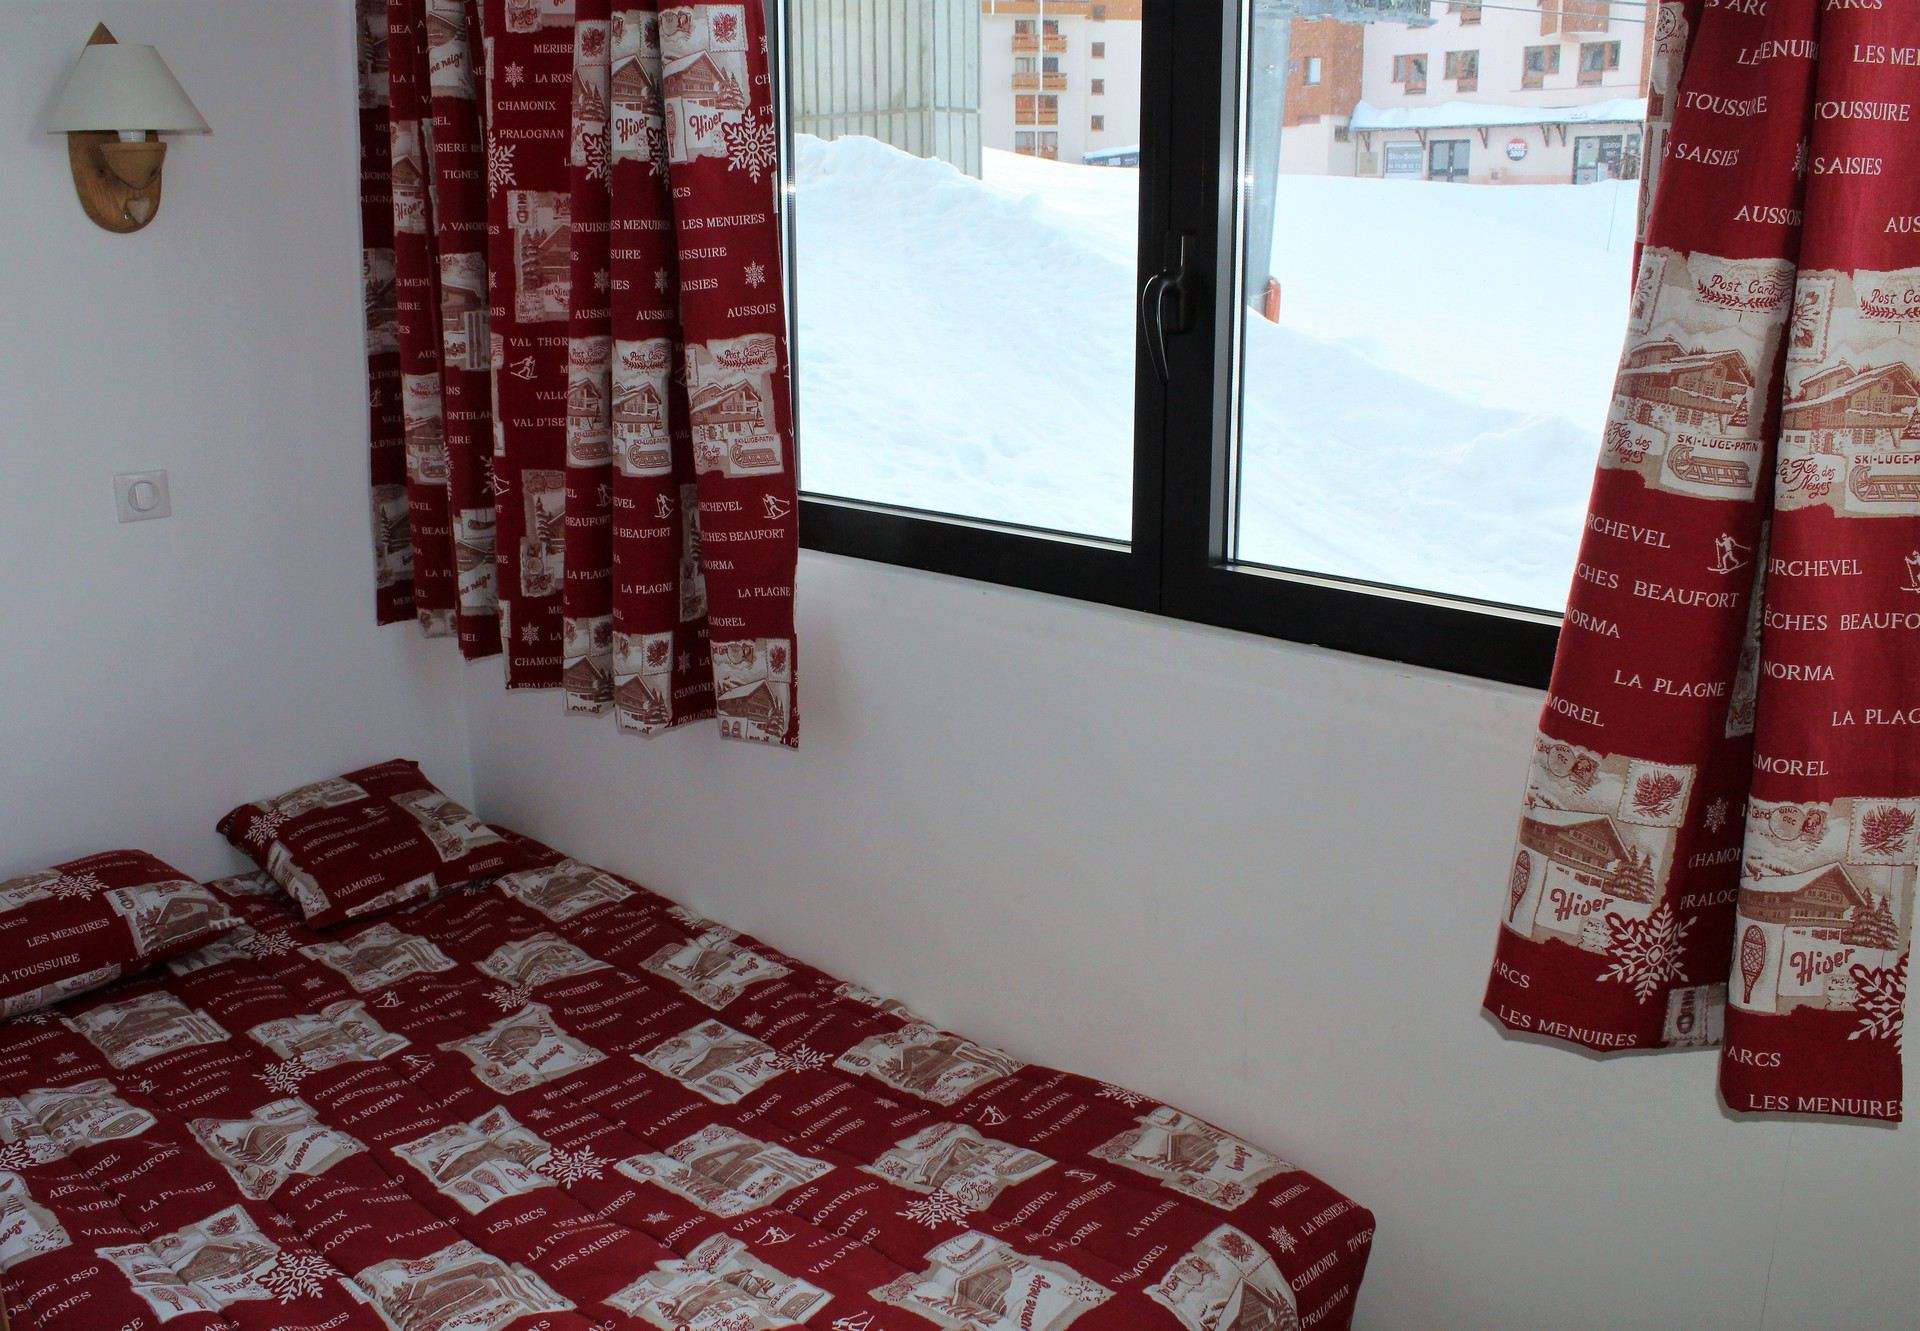 2 Room 4 Pers ski-in ski-out / LE SORBIER 203